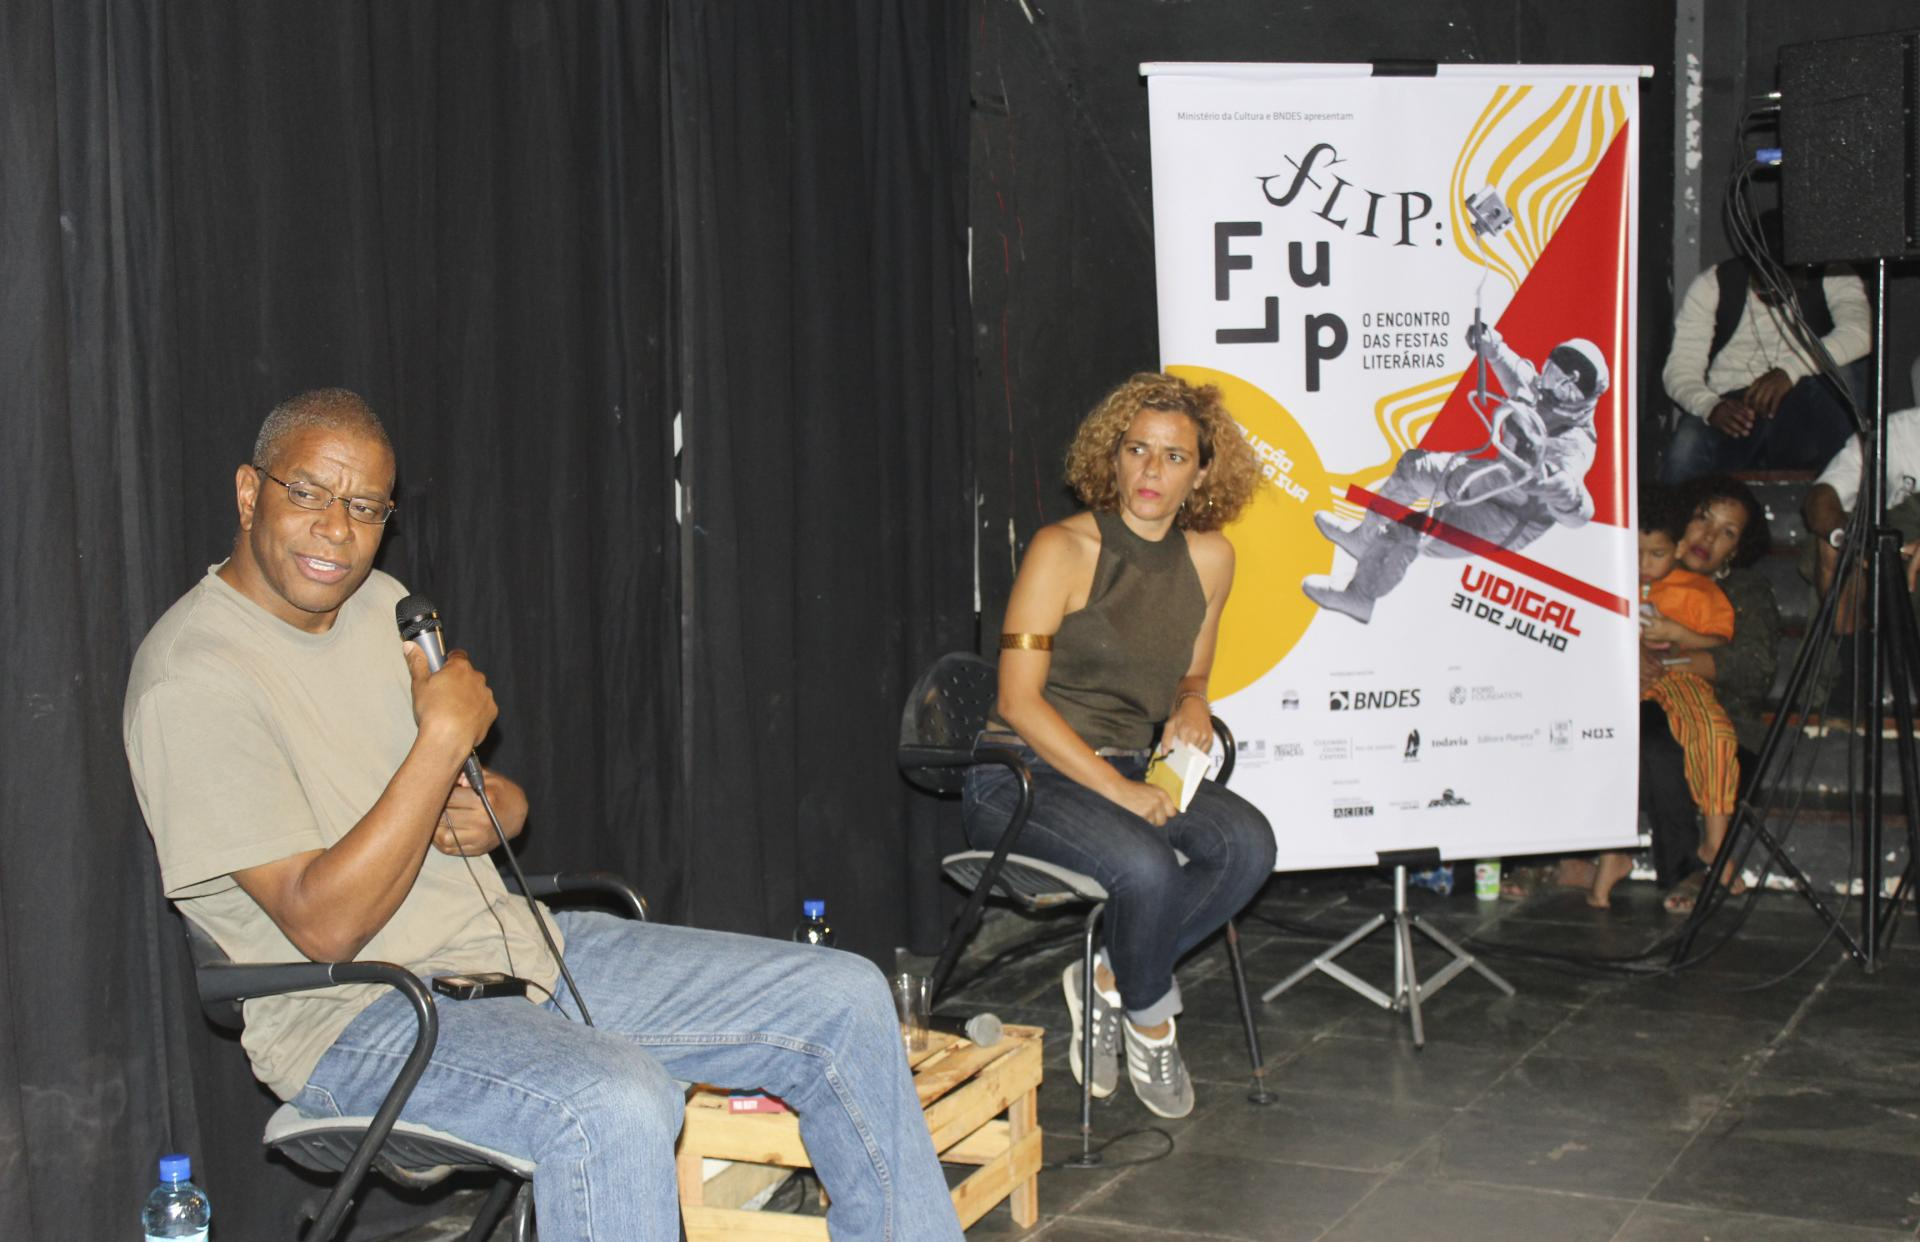 Professor Paul Beatty during the roundtable about racism at FLUP